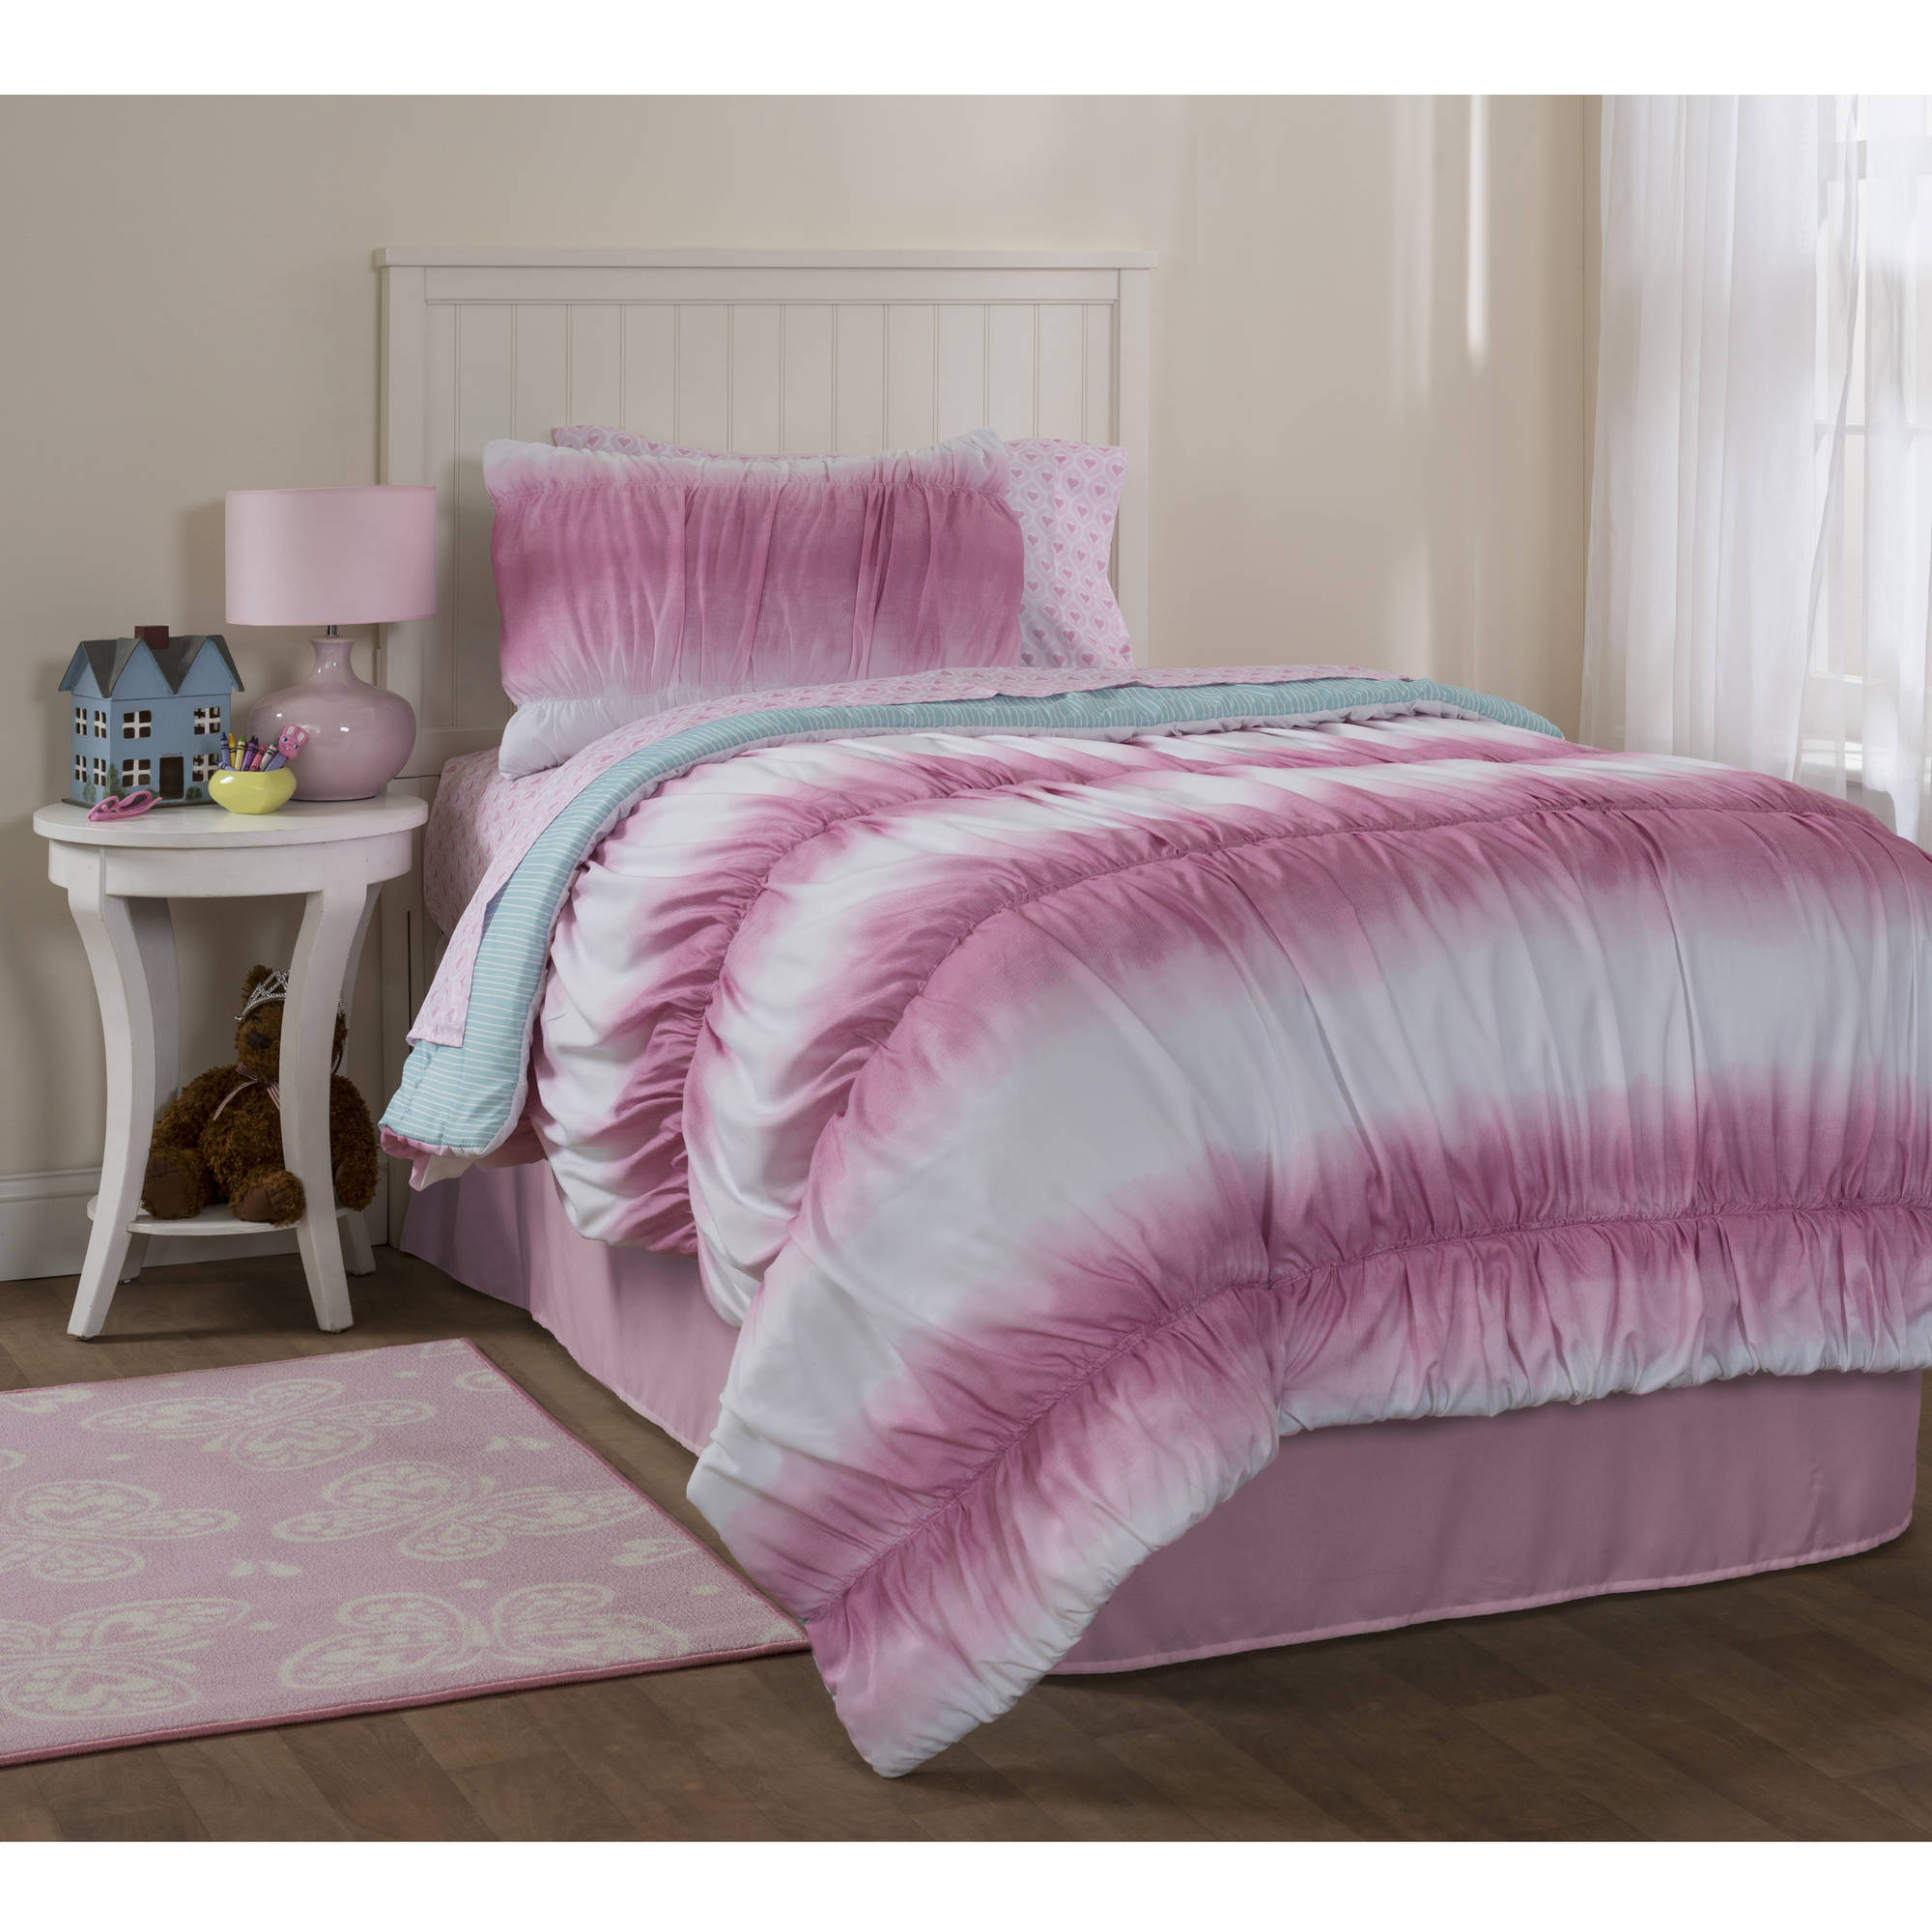 Mainstays Kids Ruched Tie Dye Bed in a Bag Bedding Set